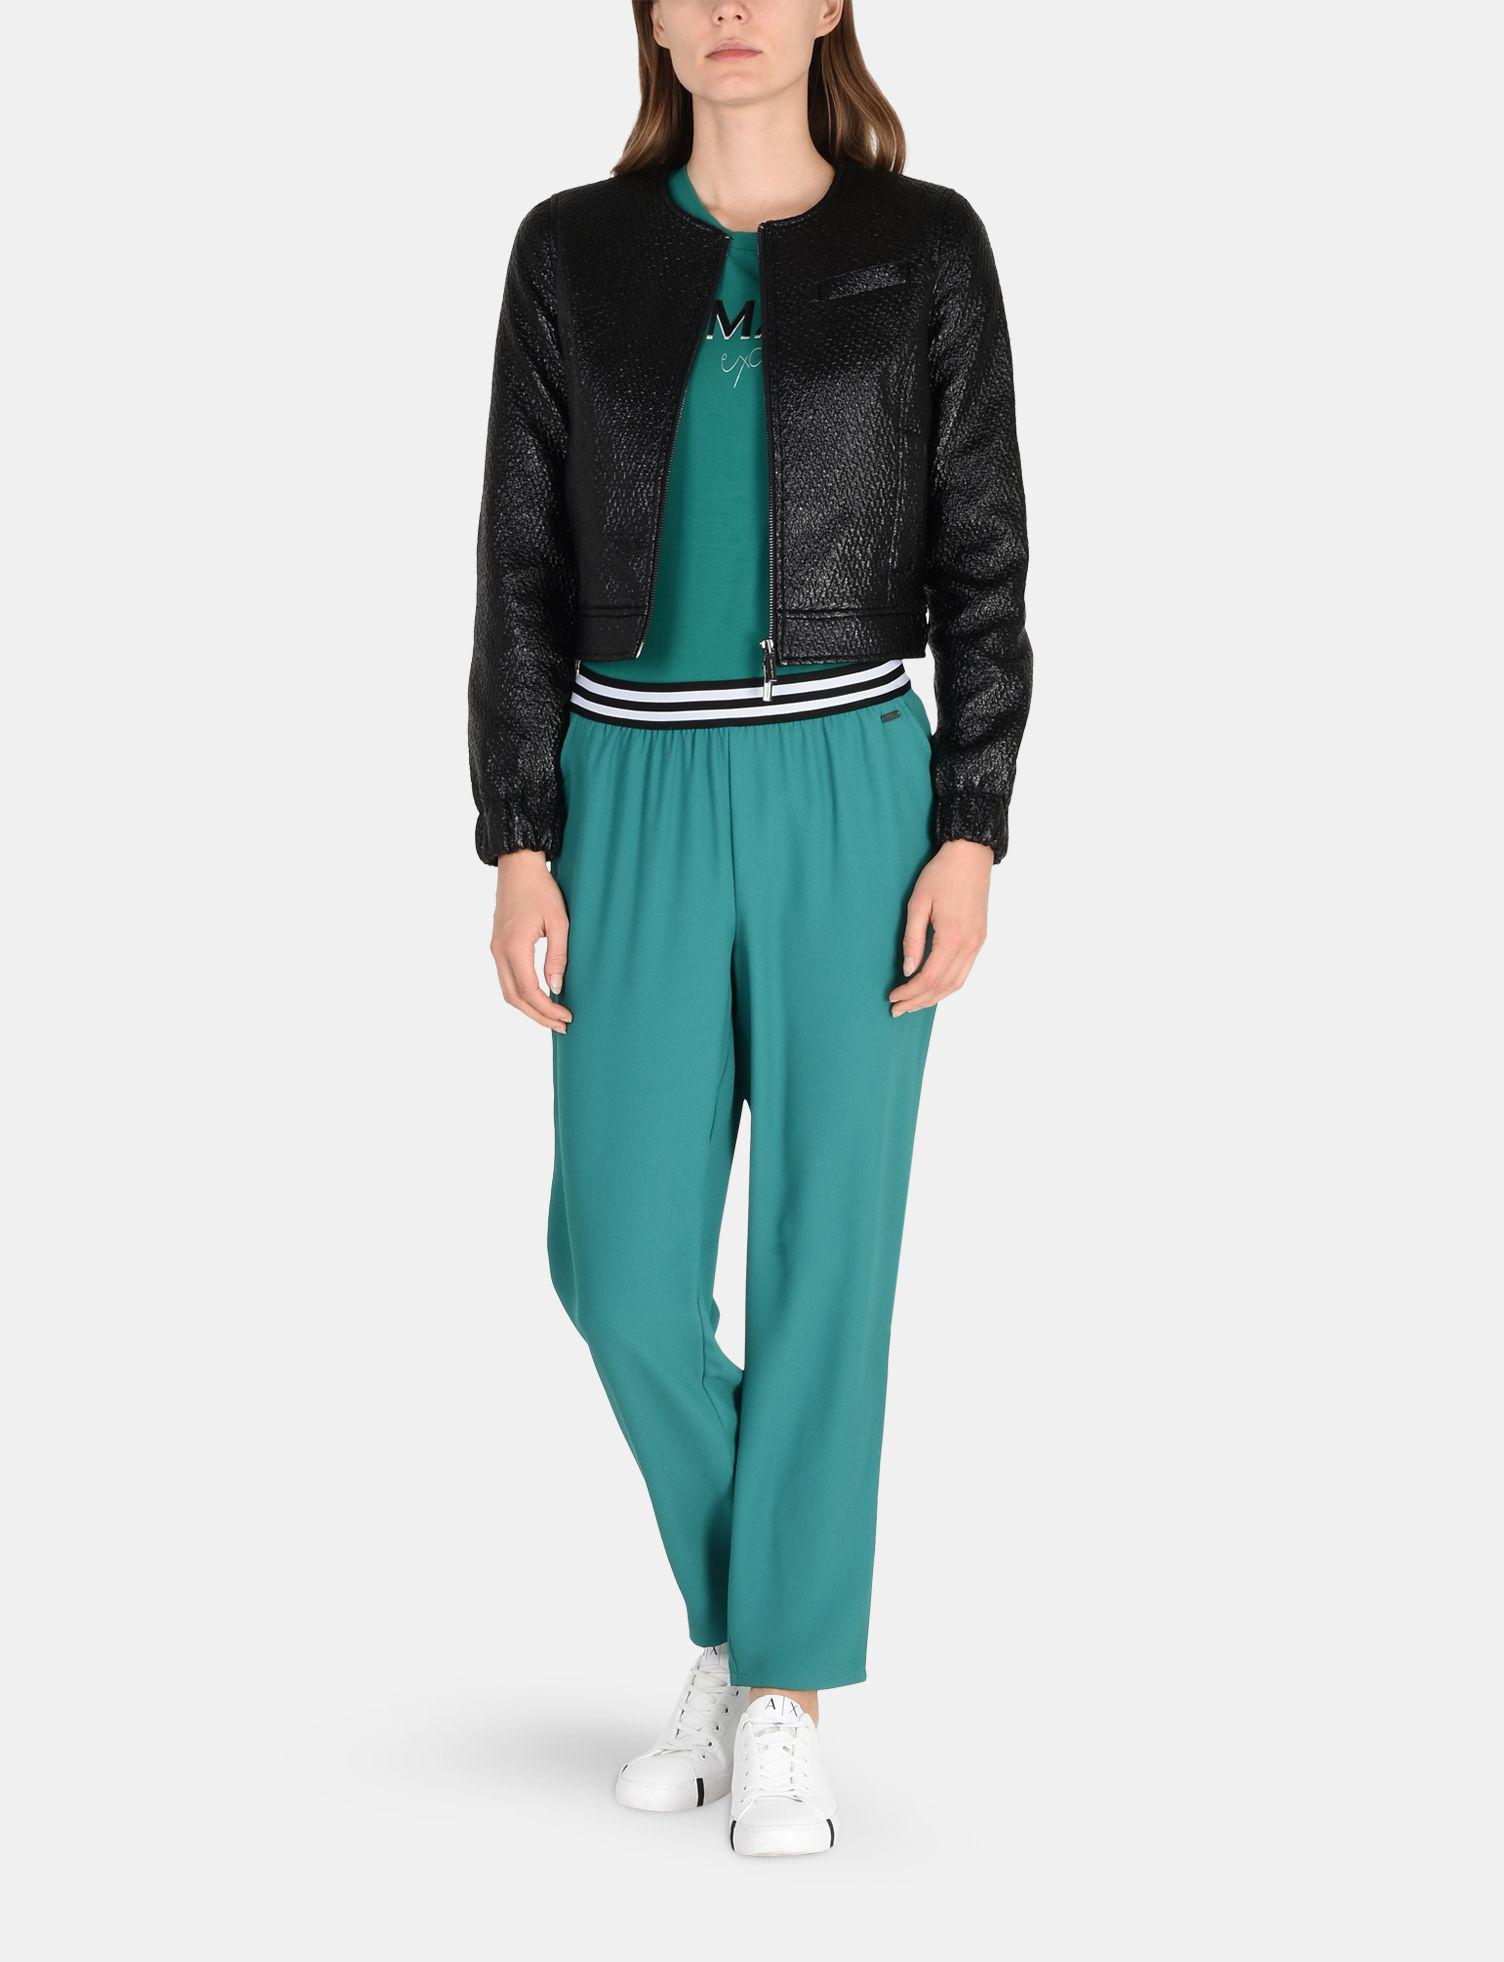 852c693989bd Lyst - Armani Exchange Striped Waist Pull-on Pant in Green